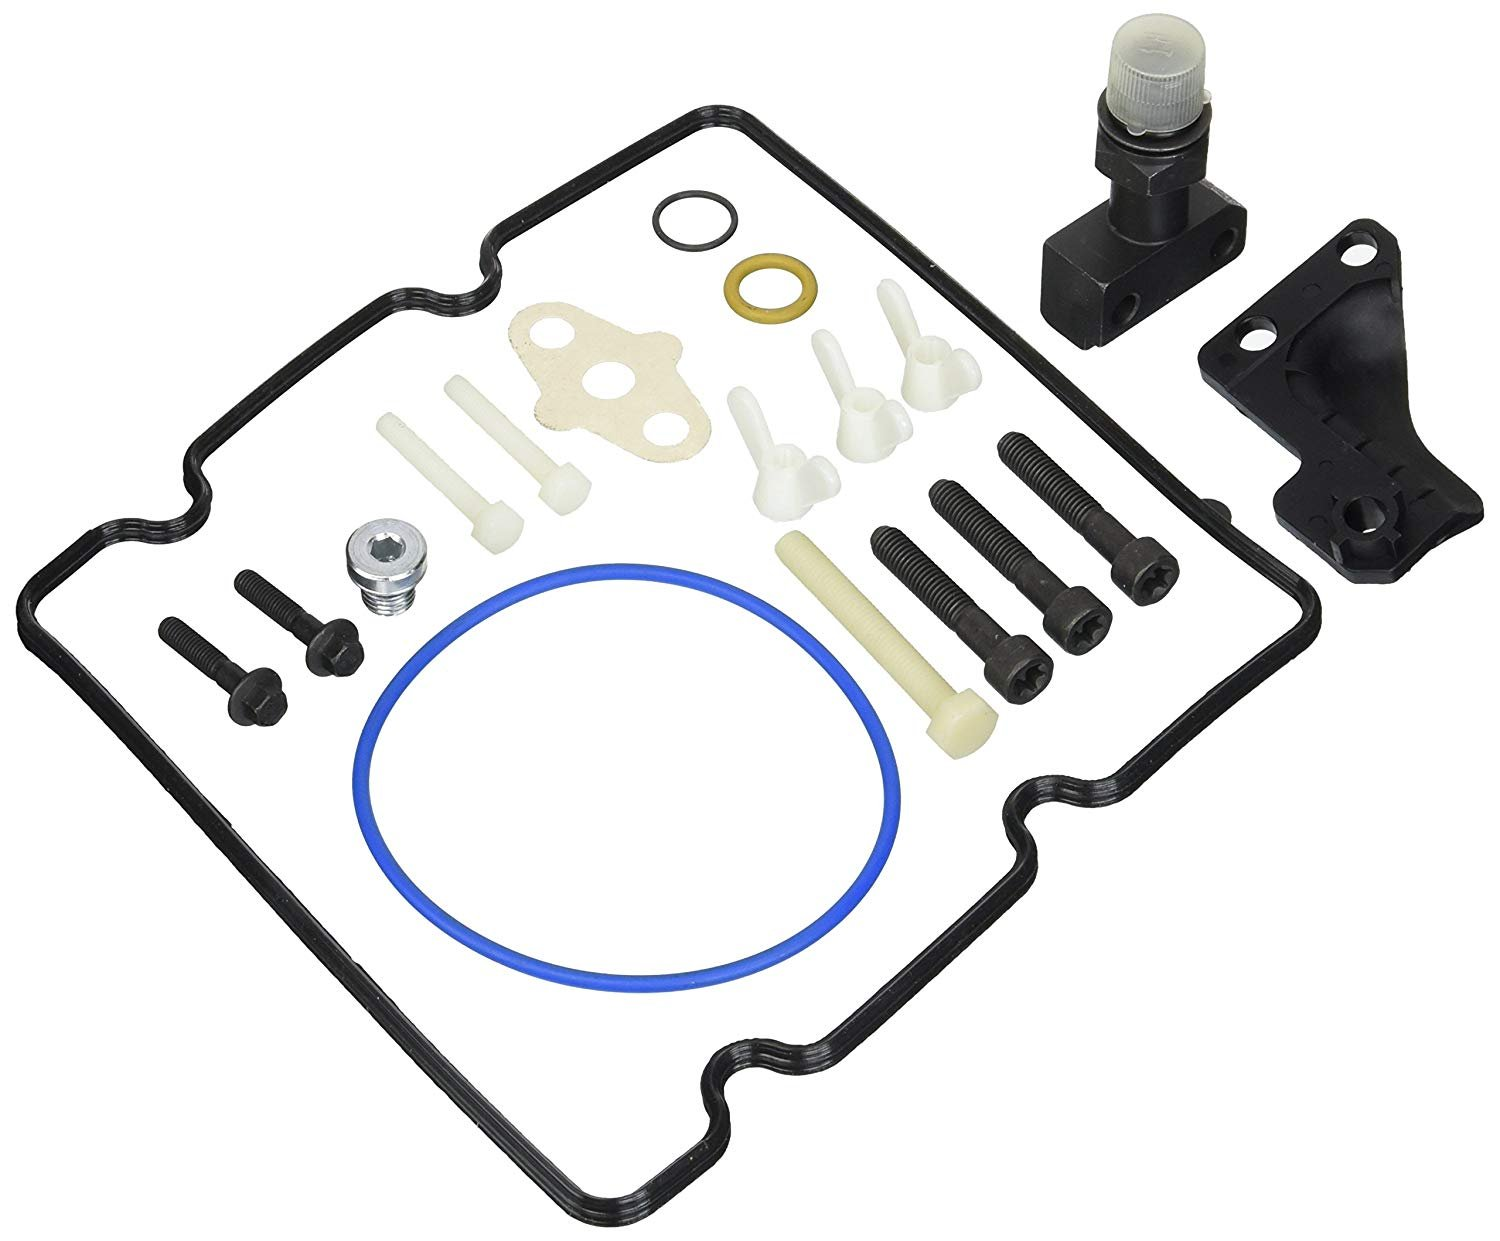 US Warehouse 4C3Z-9B246-F Fitting Update O-Ring Repair Kit Fuel Injector Pump//Fuel Injection Pump O-Ring Fit For Ford 6.0 High-Pressure Oil Pump HPOP High PSI Oil Pump by Folconroad